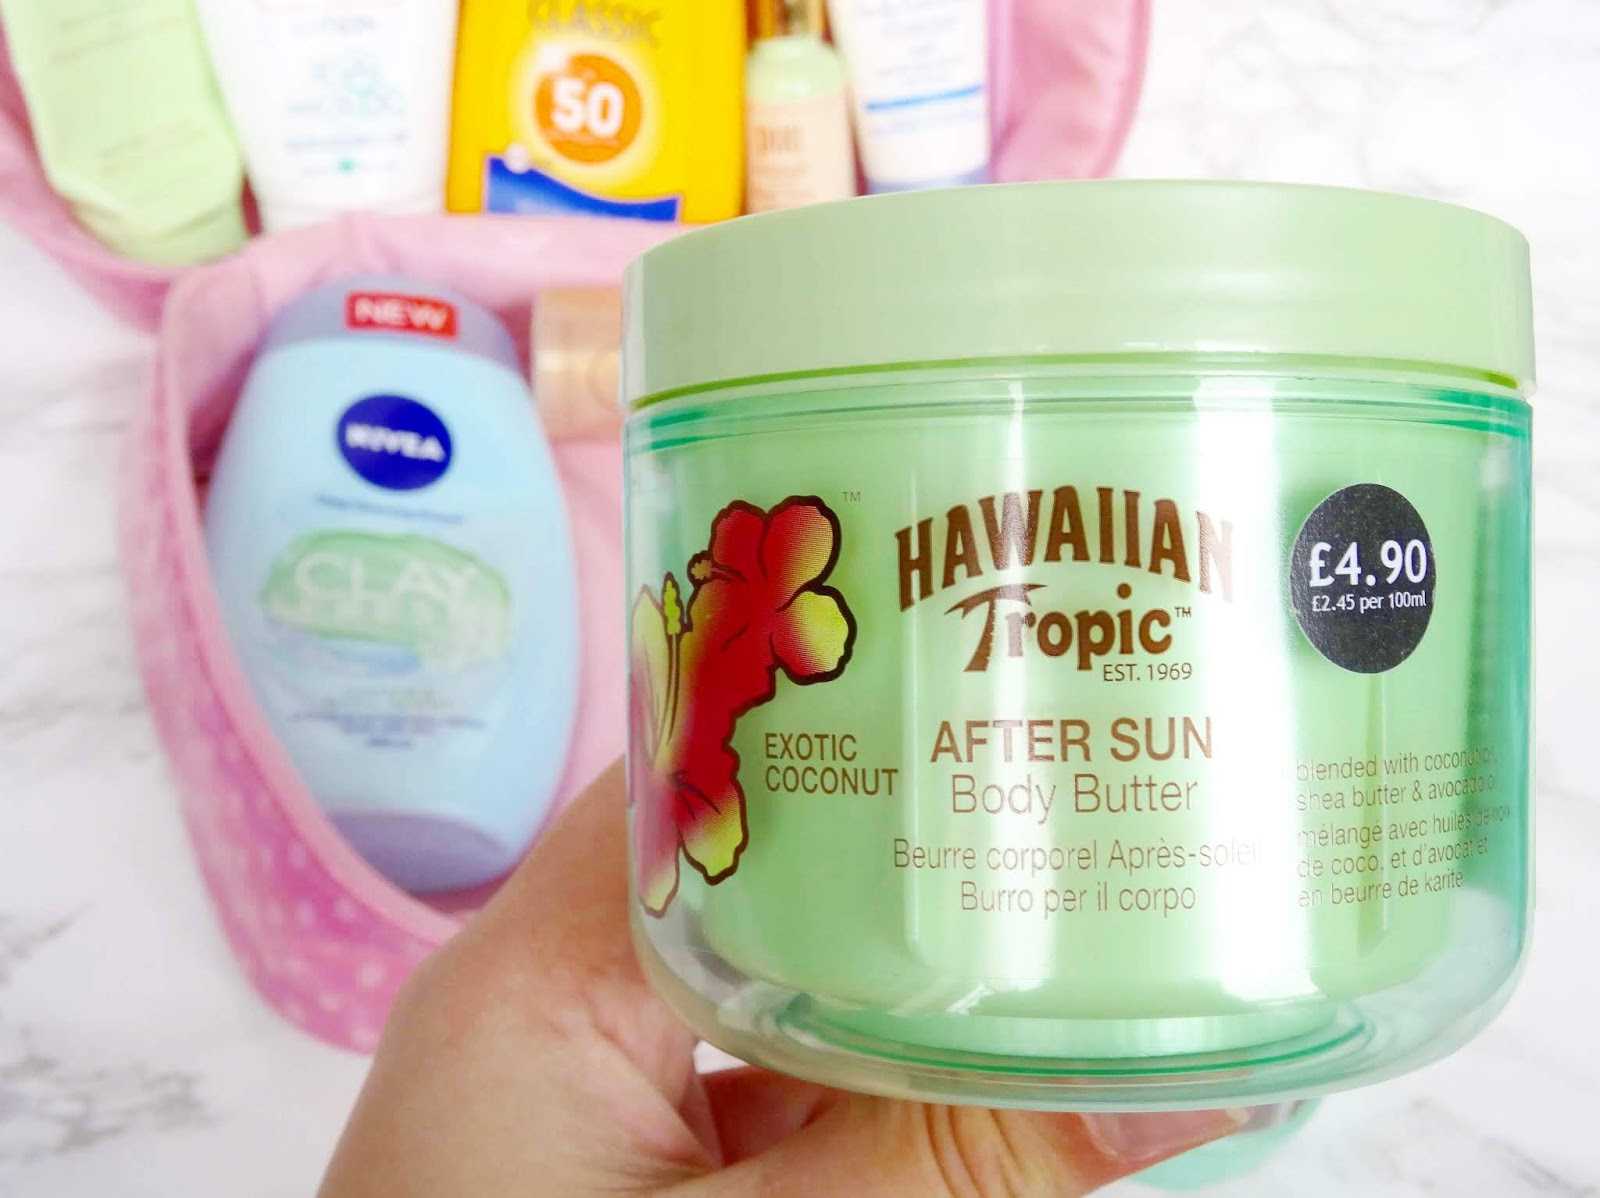 Hawaiian Tropic After Sun Body Butter in Exotic Coconut